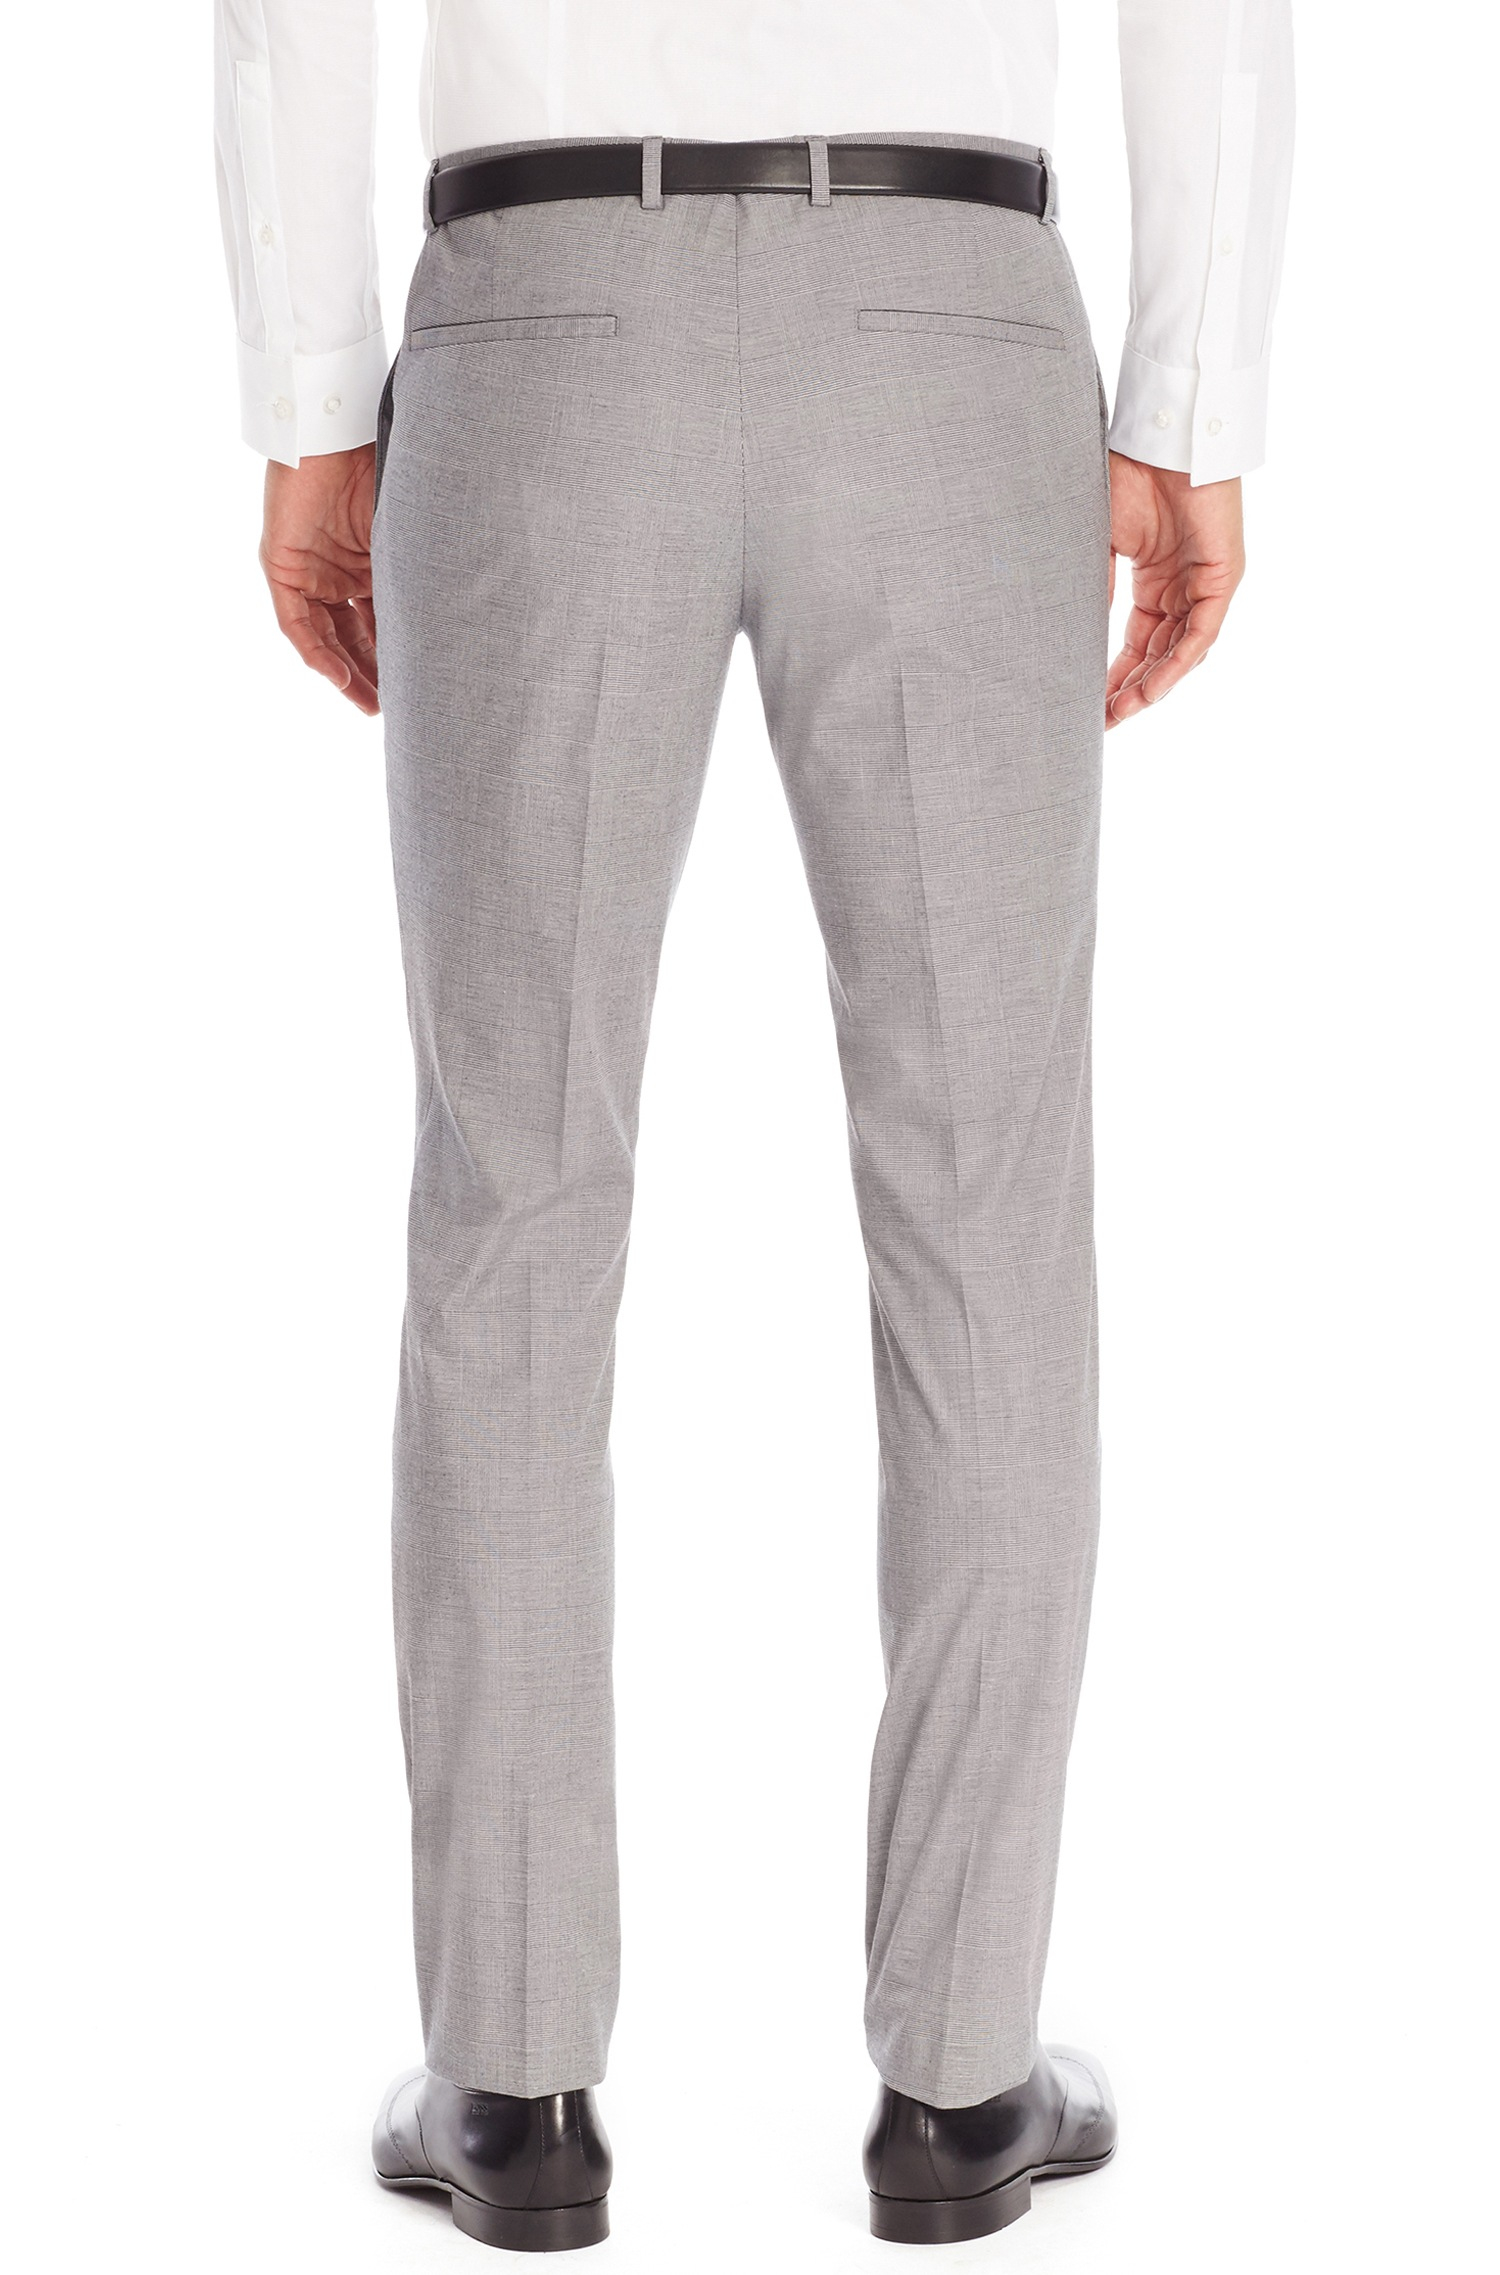 Extra-slim-fit trousers in stretch cotton HUGO BOSS 78JqZbdhV